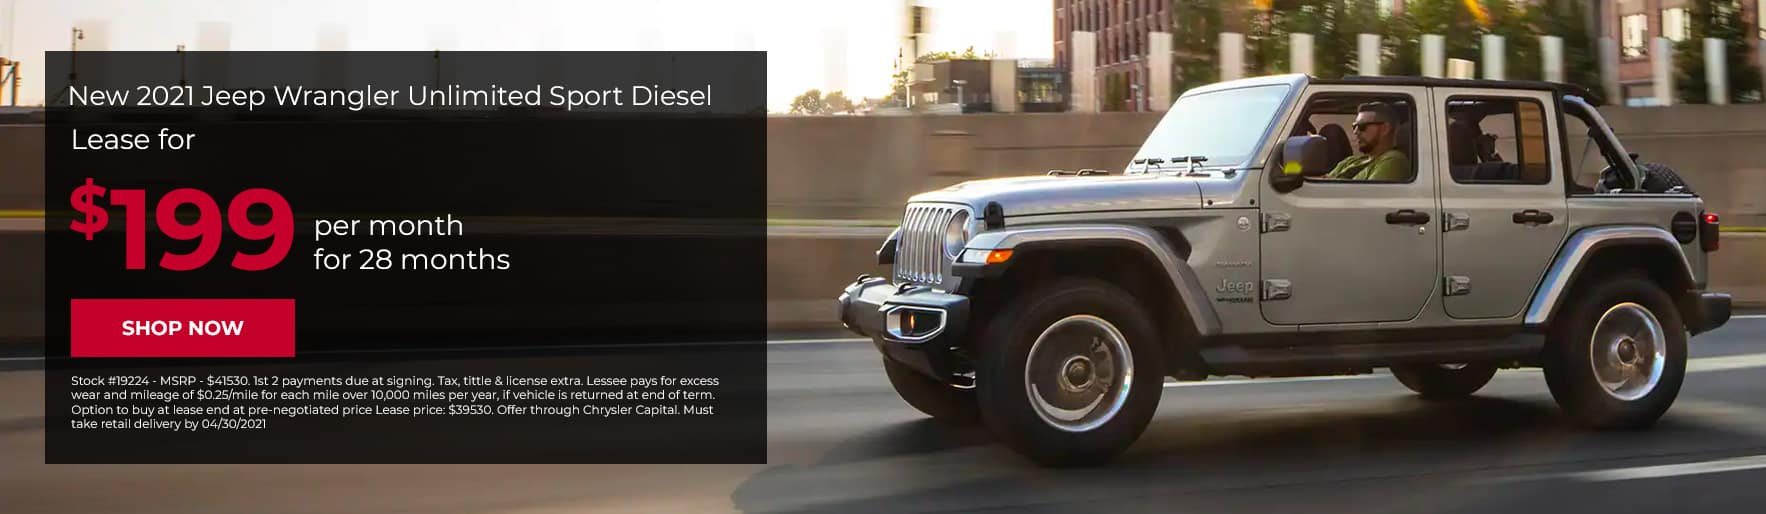 Lease a New 2021 Jeep Wrangler UNLIMITED SPORT DIESEL for $199/mo for 28mos!